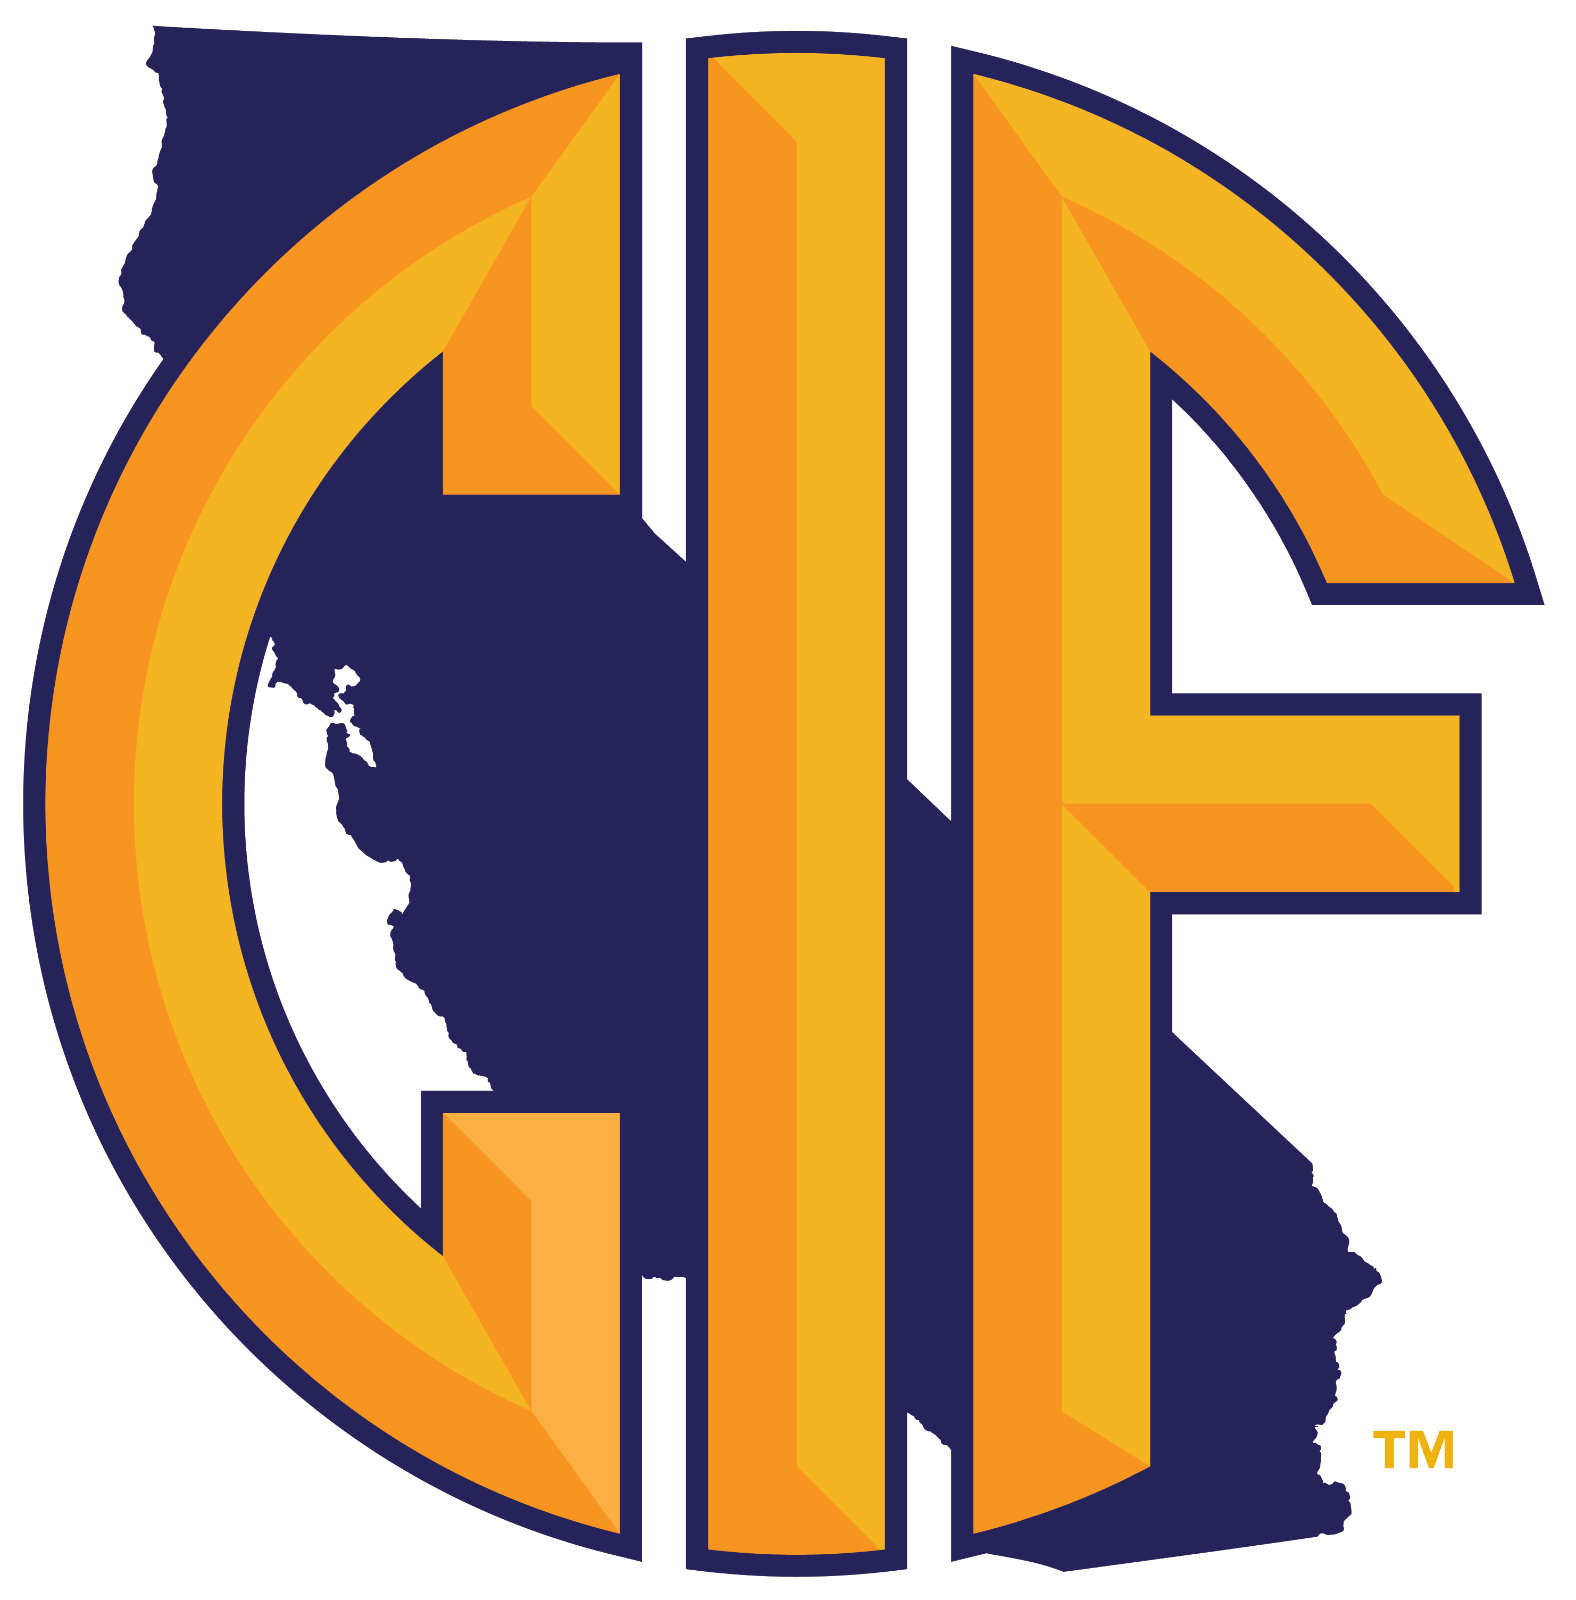 12/1/20 Links to CIF Fall/Winter Sports Updates